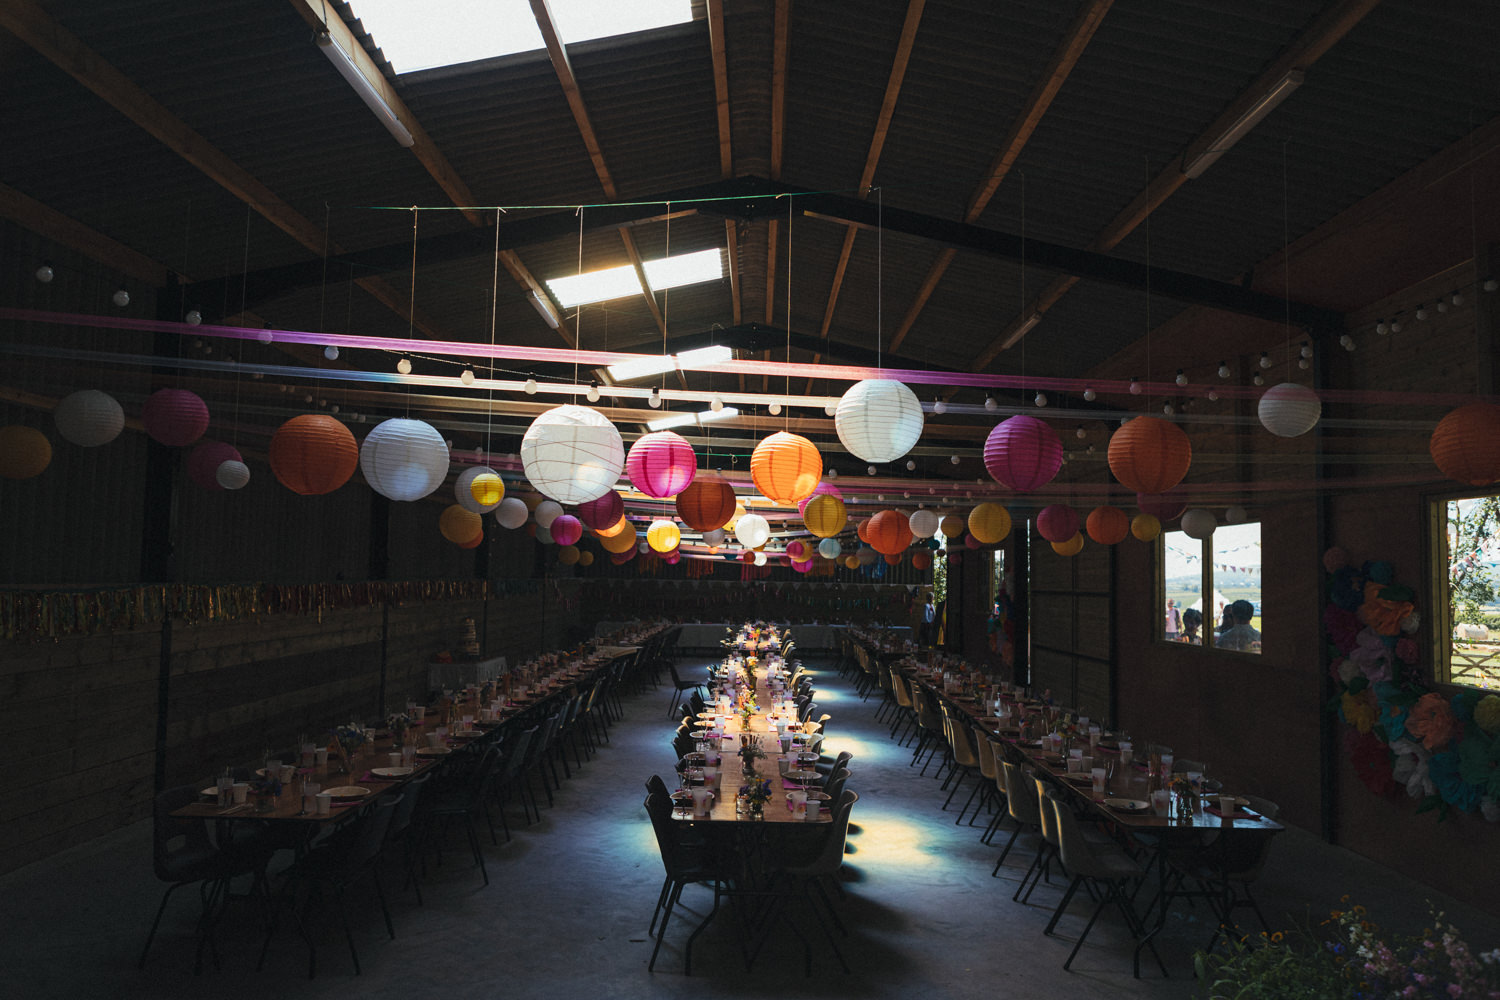 colourful wedding decor, wedding breakfast, barn, wedding barn, boho wedding, boho bride, hippy wedding, bright colours, Holsome Park Wedding Photography, totnes wedding, farm wedding, festival wedding